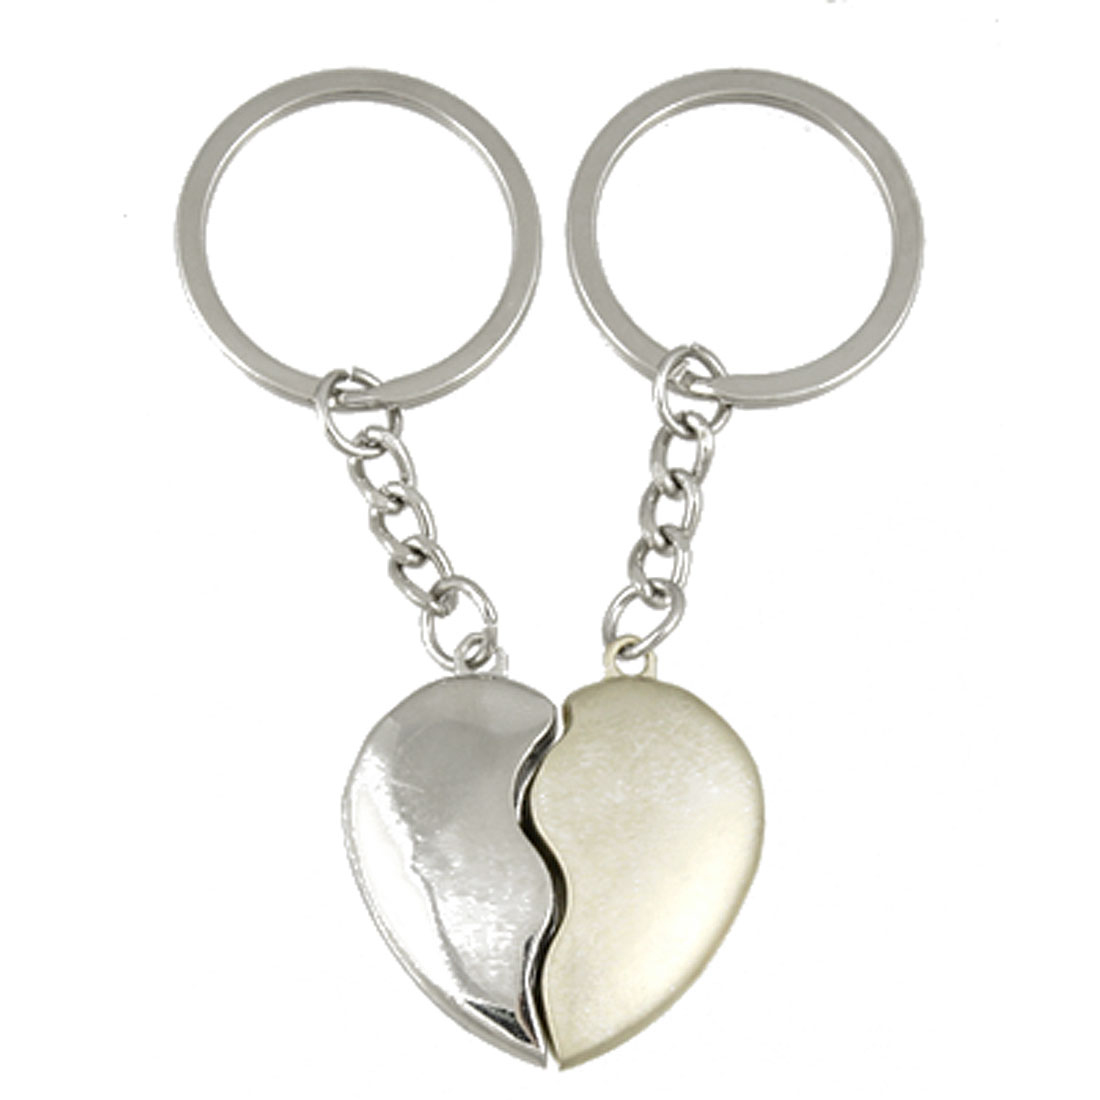 Couples Lovers Alloy Split Heart Pendant Keychain Key Ring Chain 2 Pcs